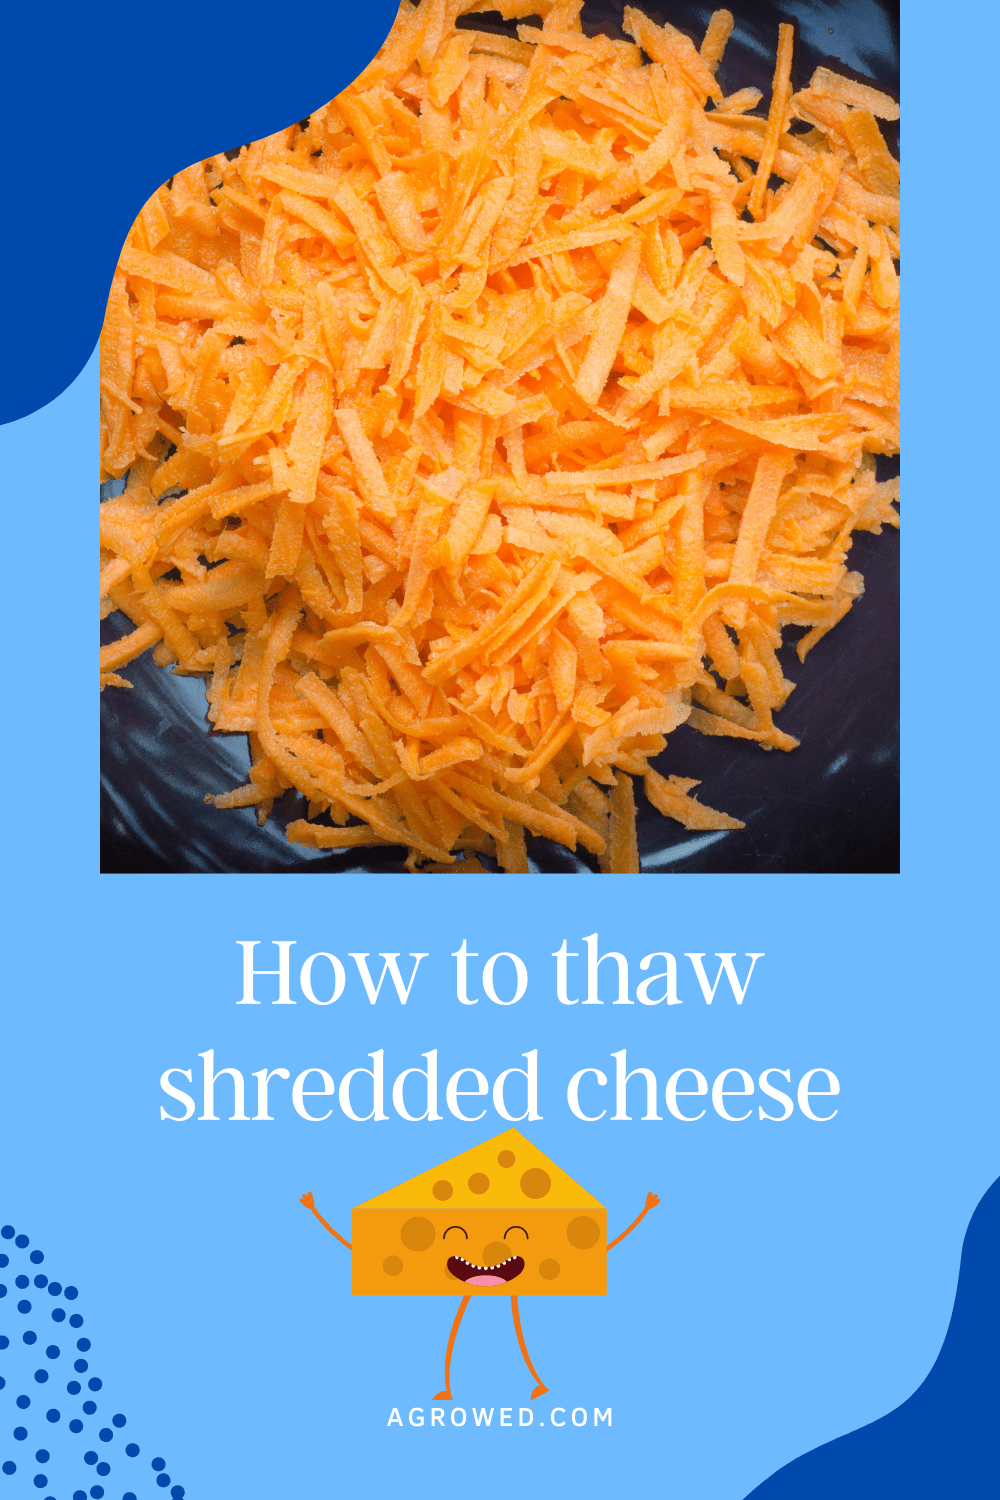 How to thaw shredded cheese